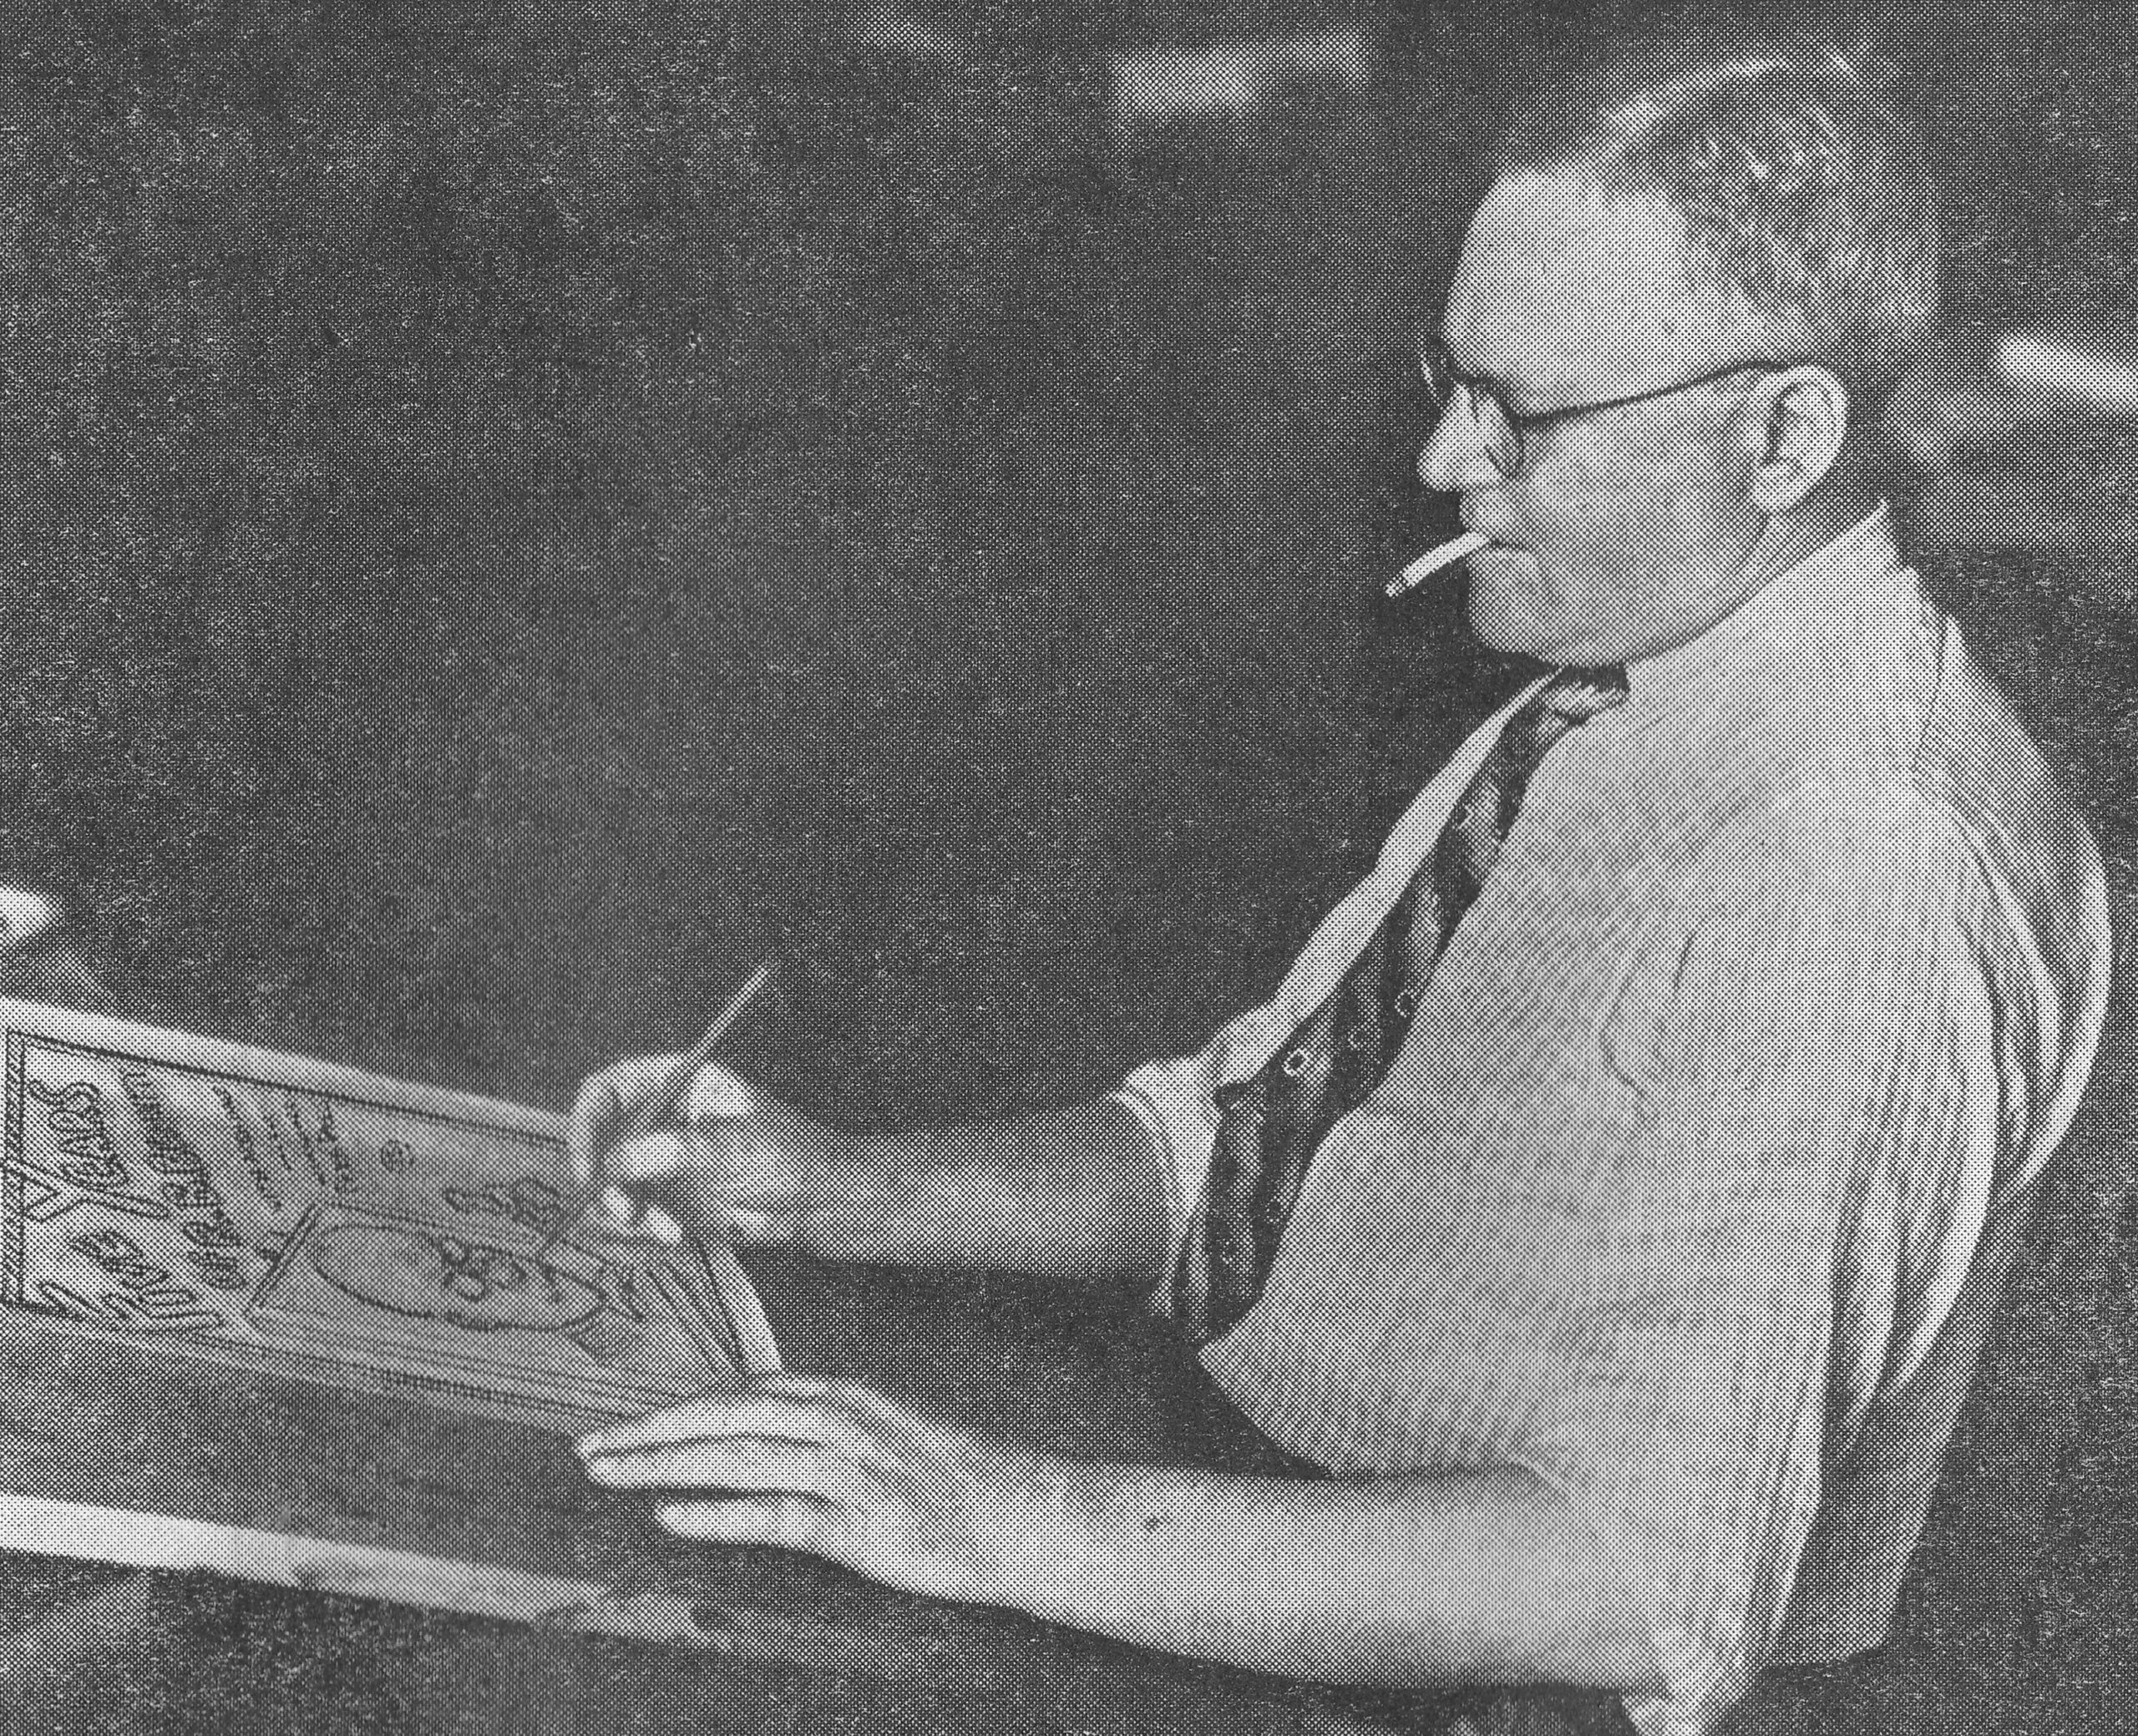 C:\Users\Robert\Documents\CARTOONING ILLUSTRATION ANIMATION\IMAGE OF PERSON\D\DALE Arch, The Left & the Right, 1945, 3.jpg